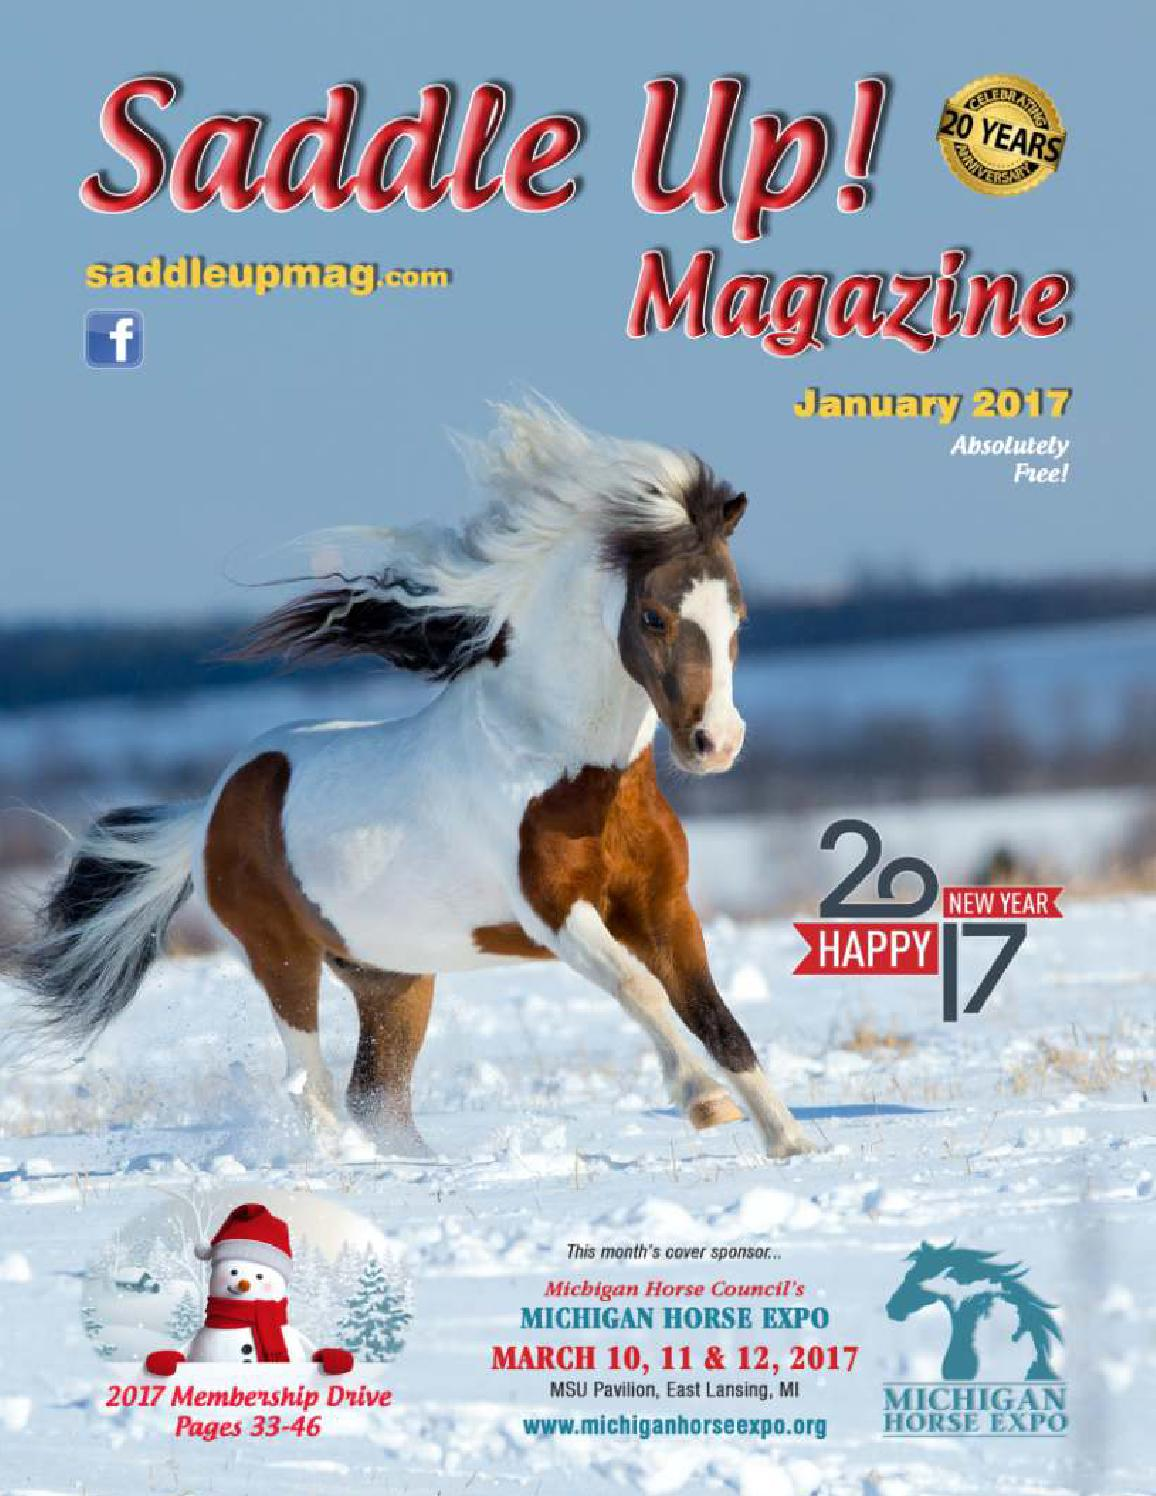 page_1 january 2017 saddle up! magazine by saddle up! magazine issuu  at fashall.co